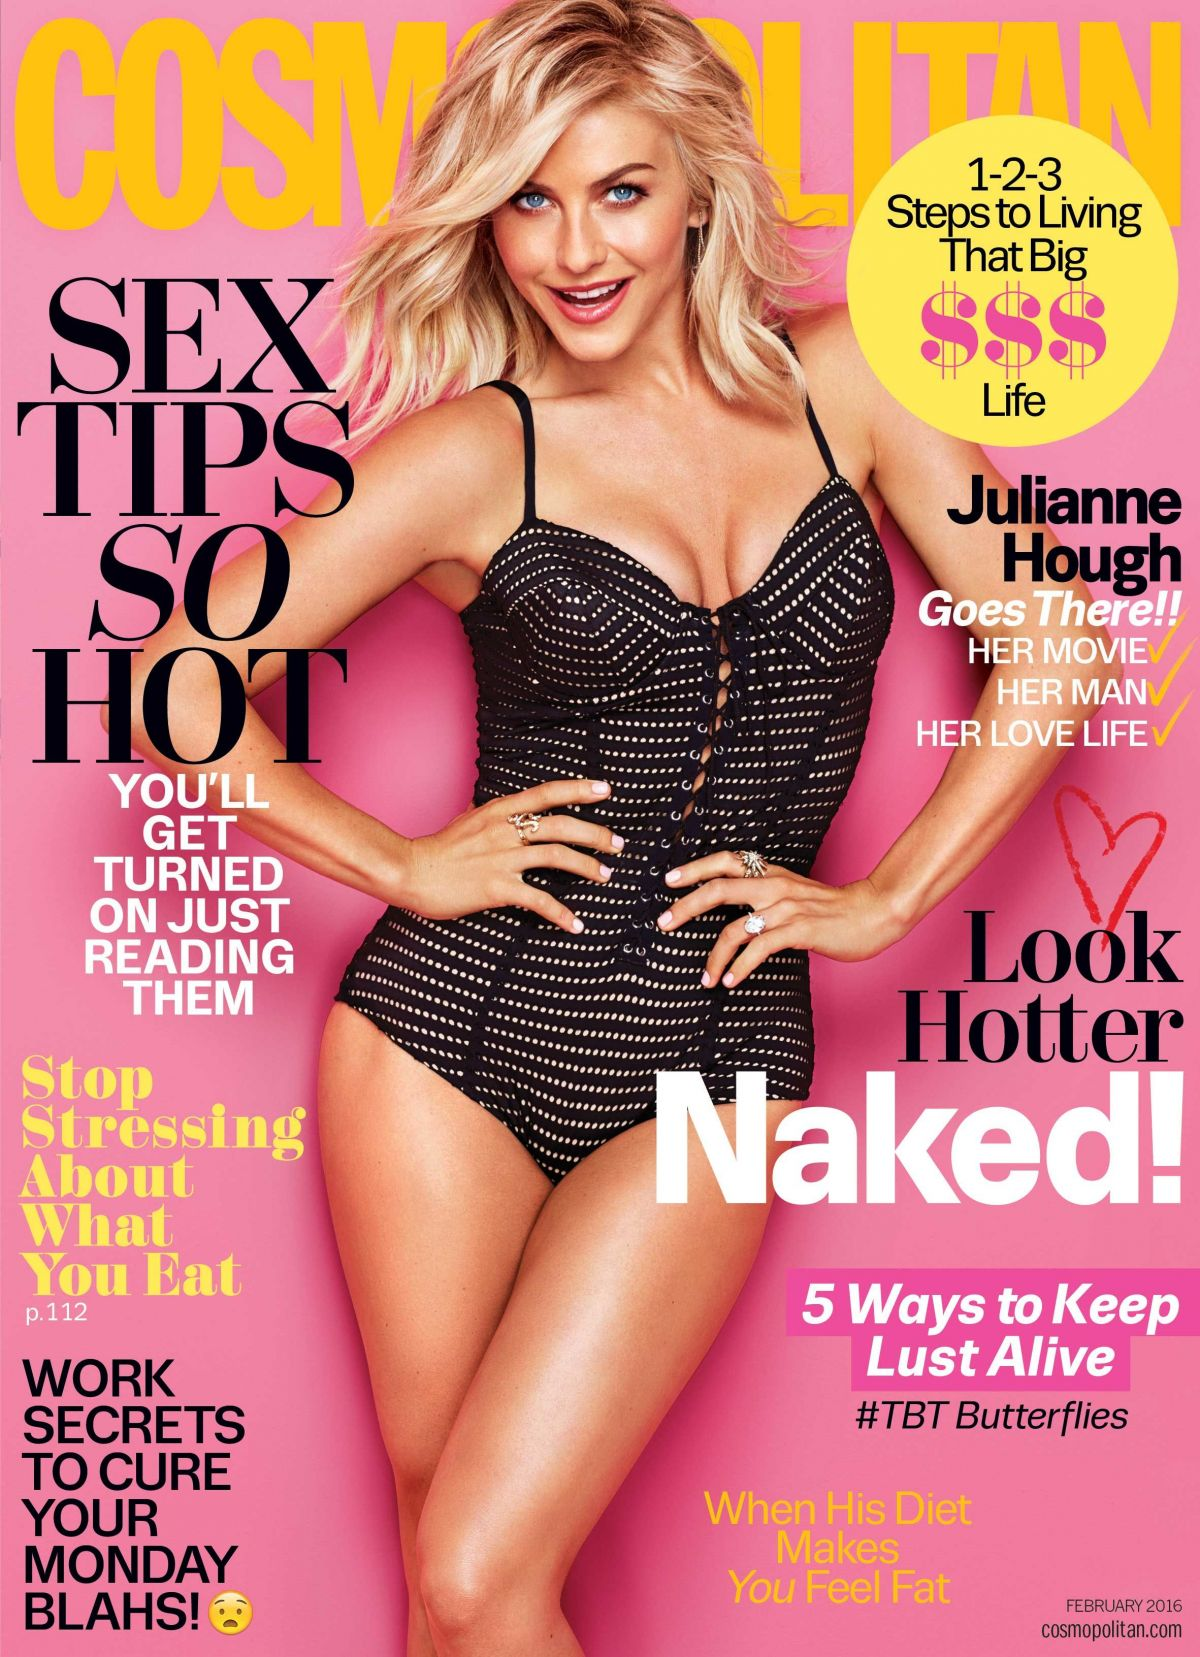 JULIANNE HOUGH in Cosmopolitan Magazine, February 2016 Issue